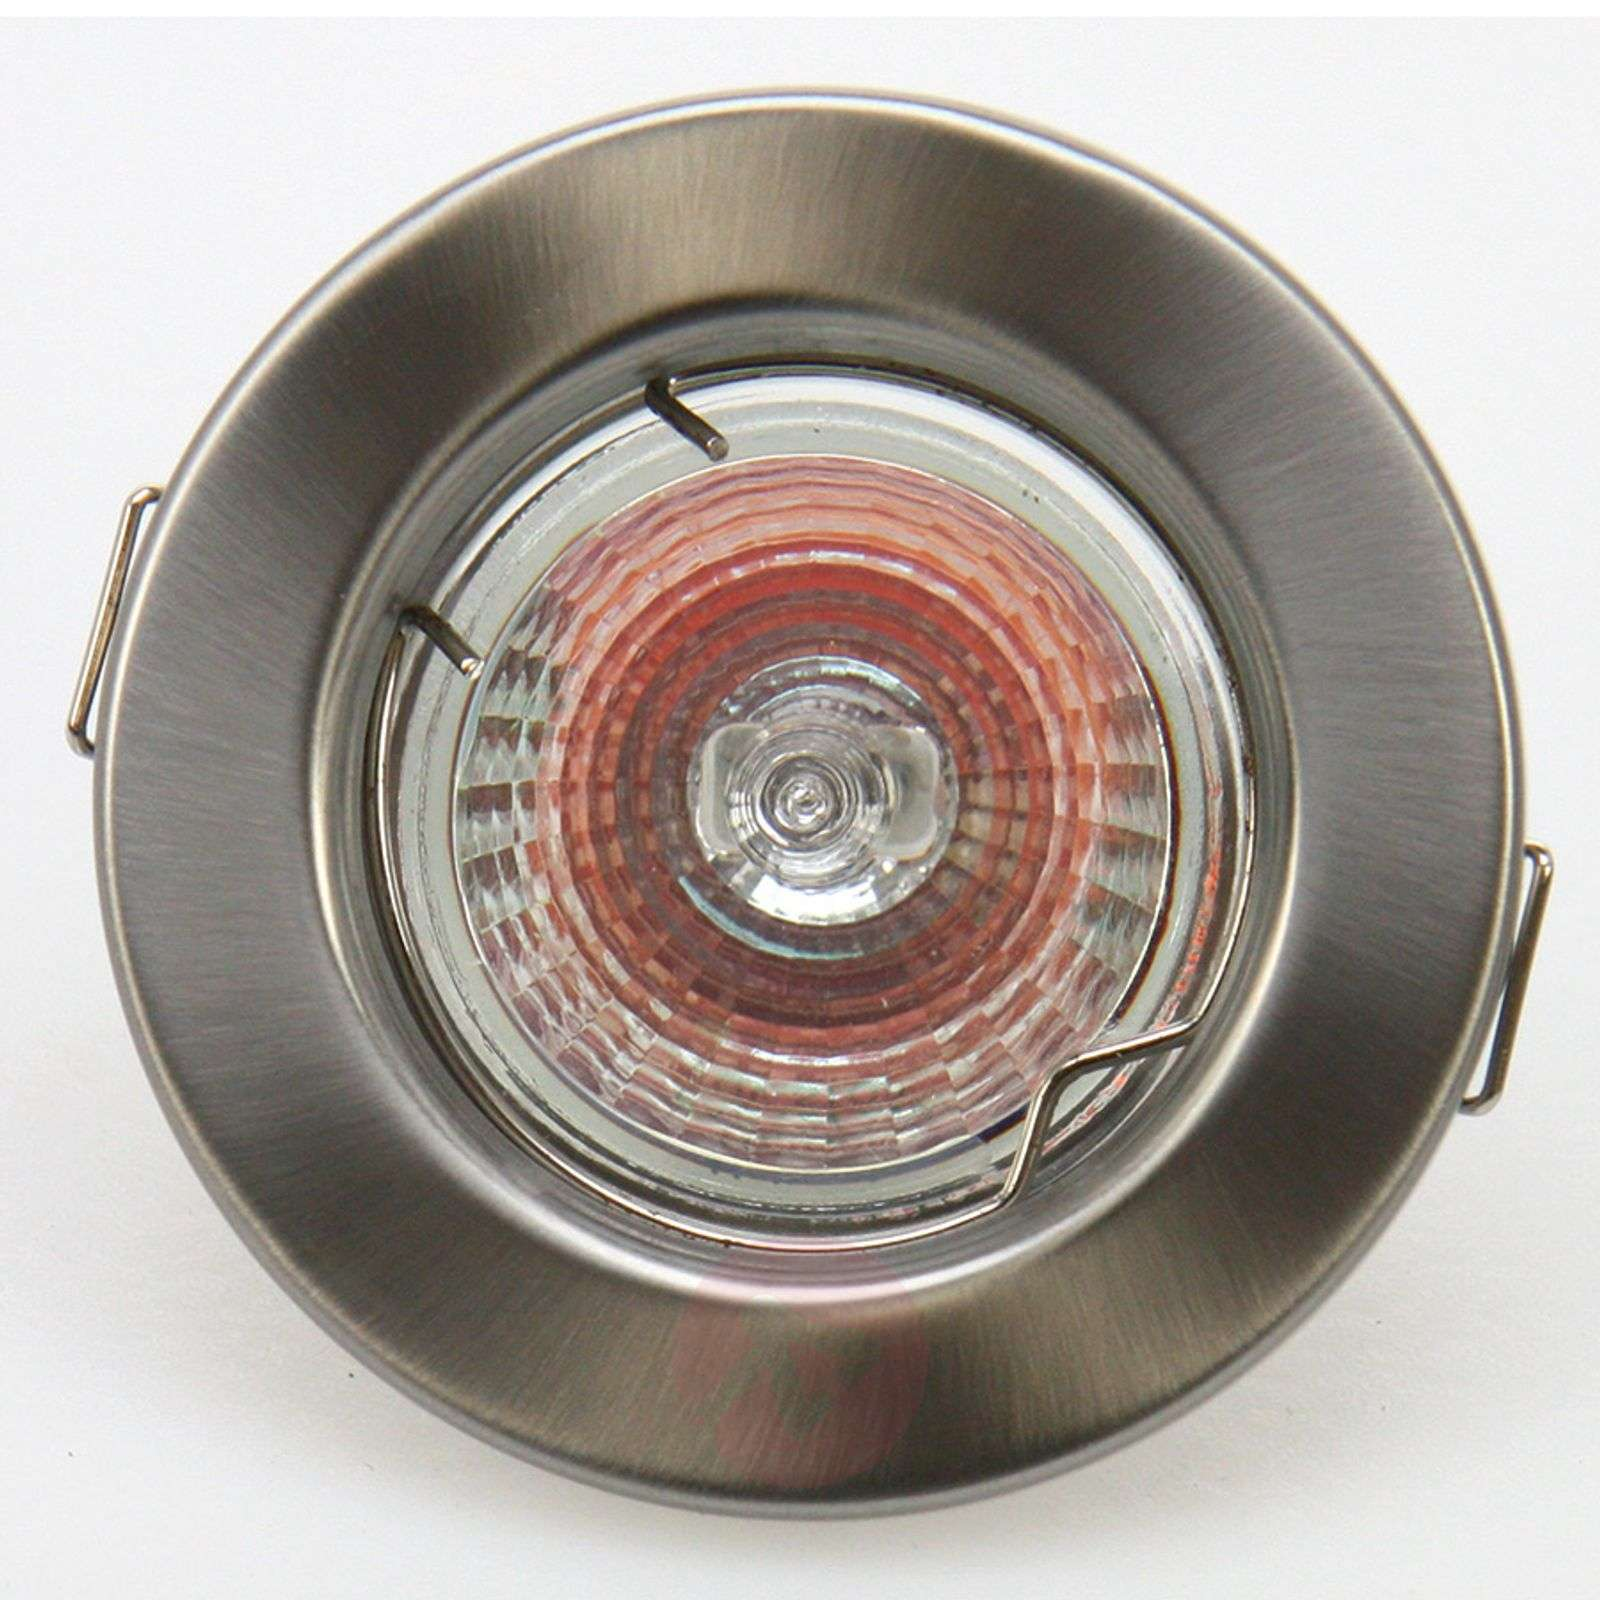 Low voltage recessed light stainless steel mr16 lights low voltage recessed light stainless steel mr16 9504107 01 arubaitofo Images